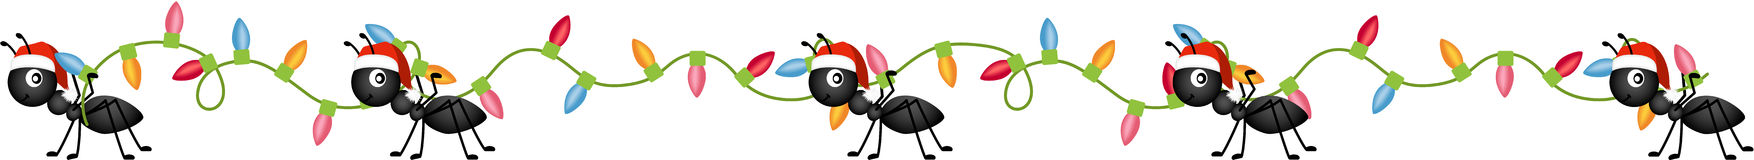 Ants on the march to deliver Christmas Lights. Scalable vectorial image representing a ants on the march to deliver Christmas lights, isolated on white Stock Image